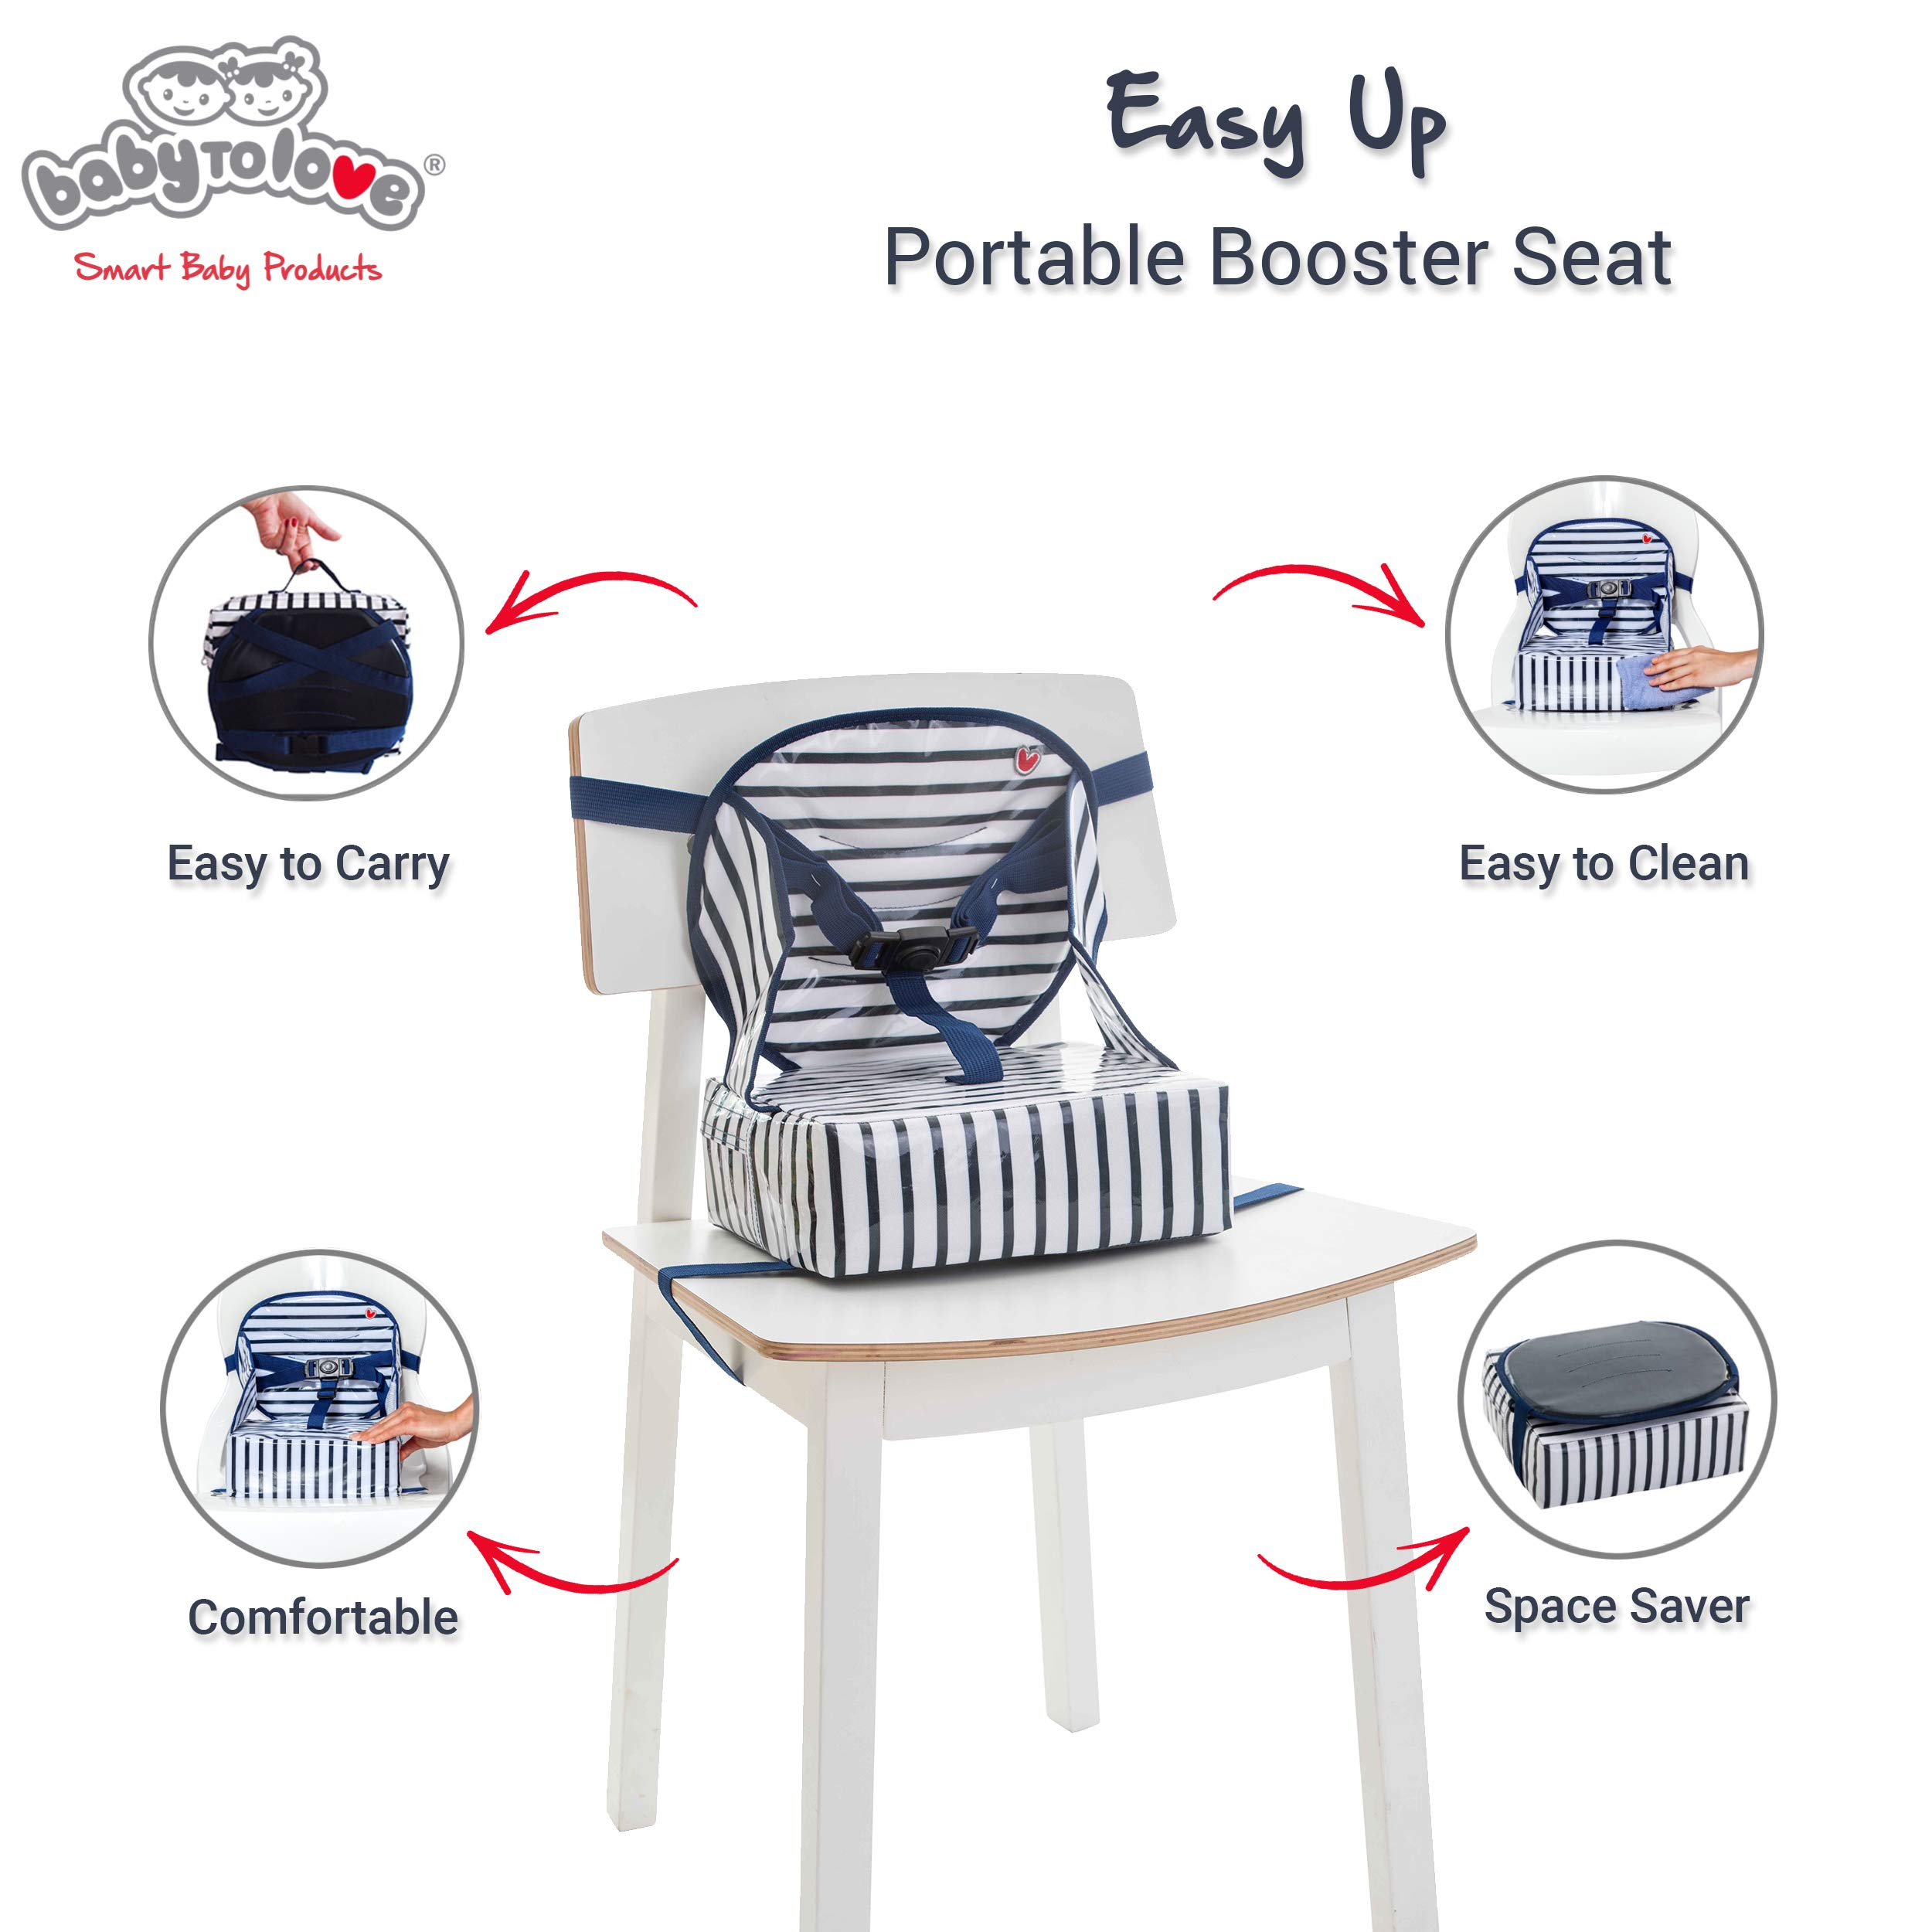 Baby-To-Love Easy Up, Portable Travel Booster Seat Dining Toddler, Boy & Girl (Blue Stripes)